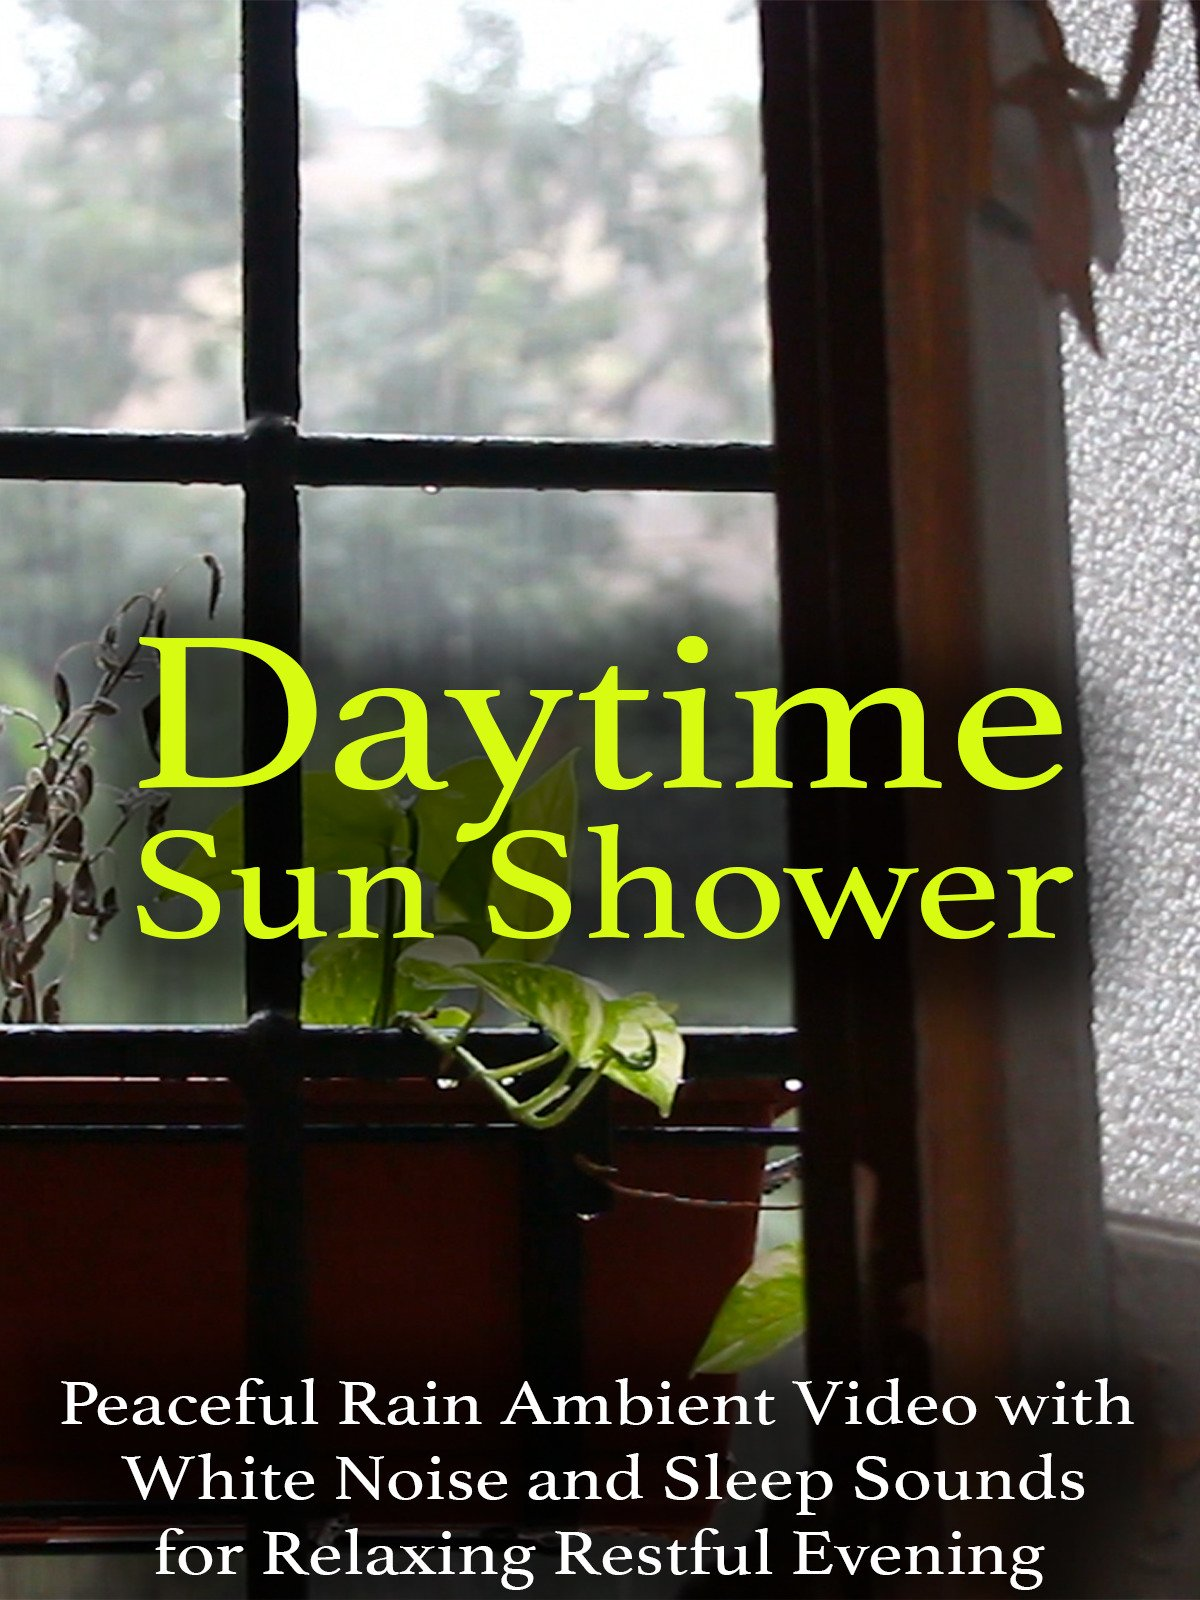 Daytime Sun Shower Peaceful Rain Ambient Video with White Noise and Sleep Sounds for Relaxing Restful Evening